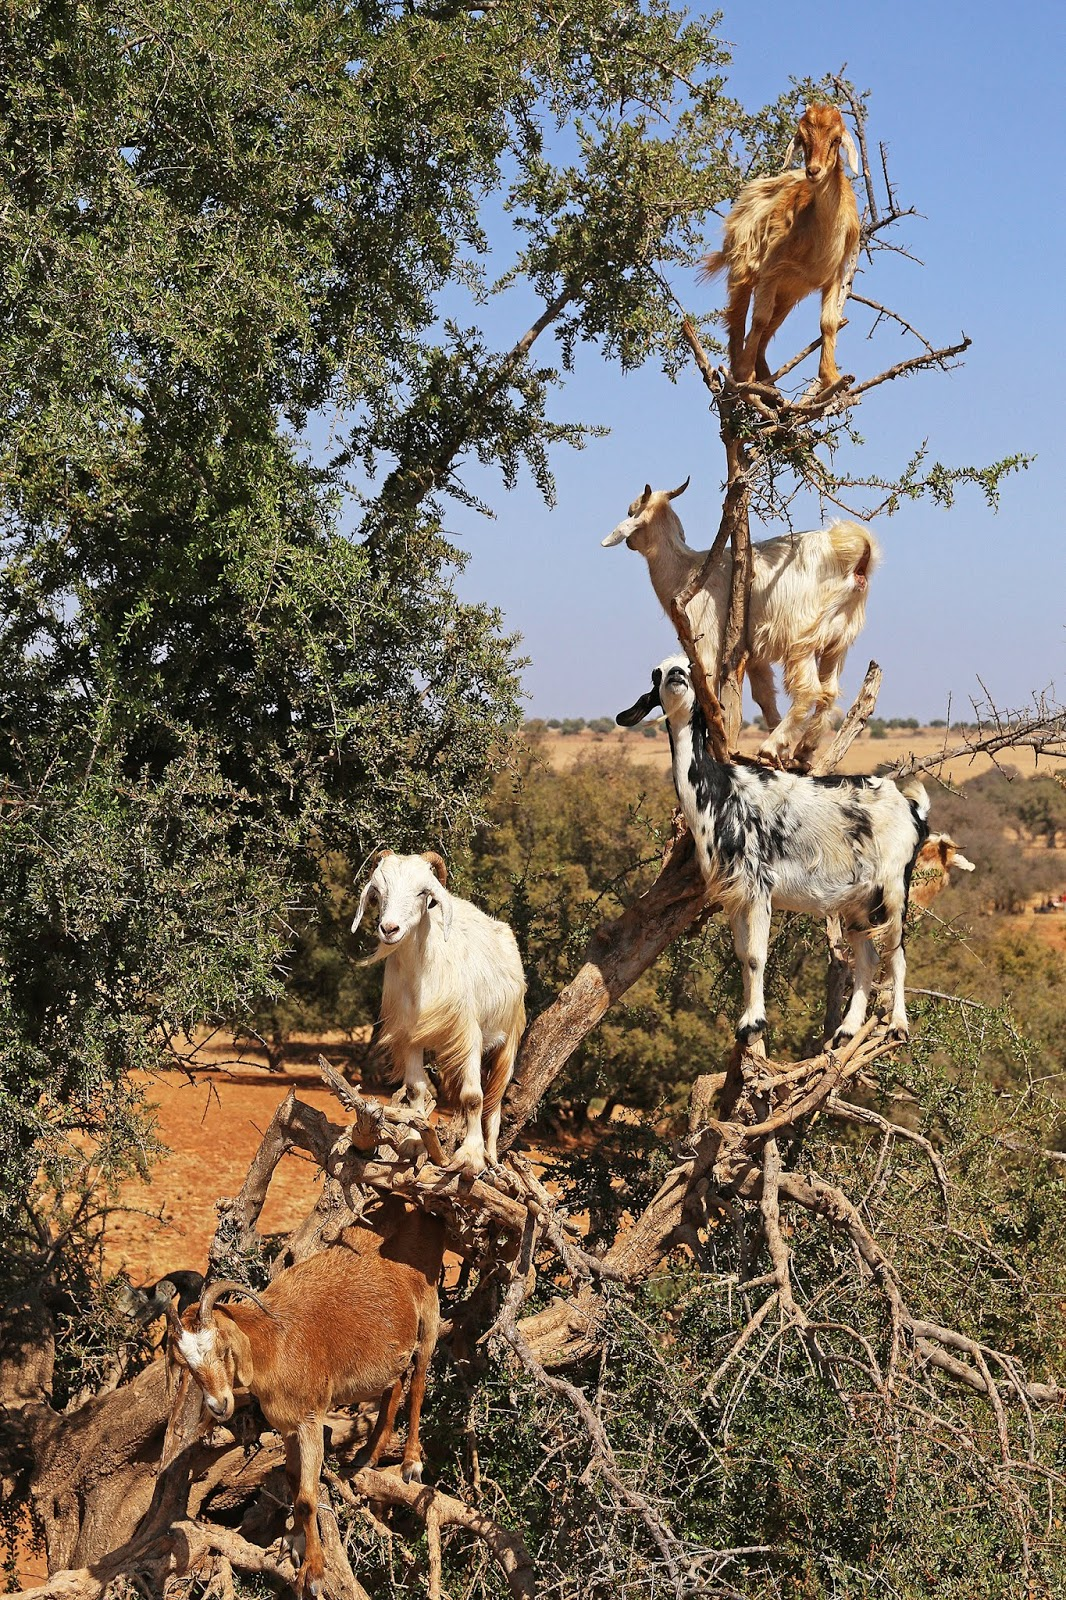 How Argan Oil is Made - From Tree-Climbing Goats to Women's Cooperatives in Morocco